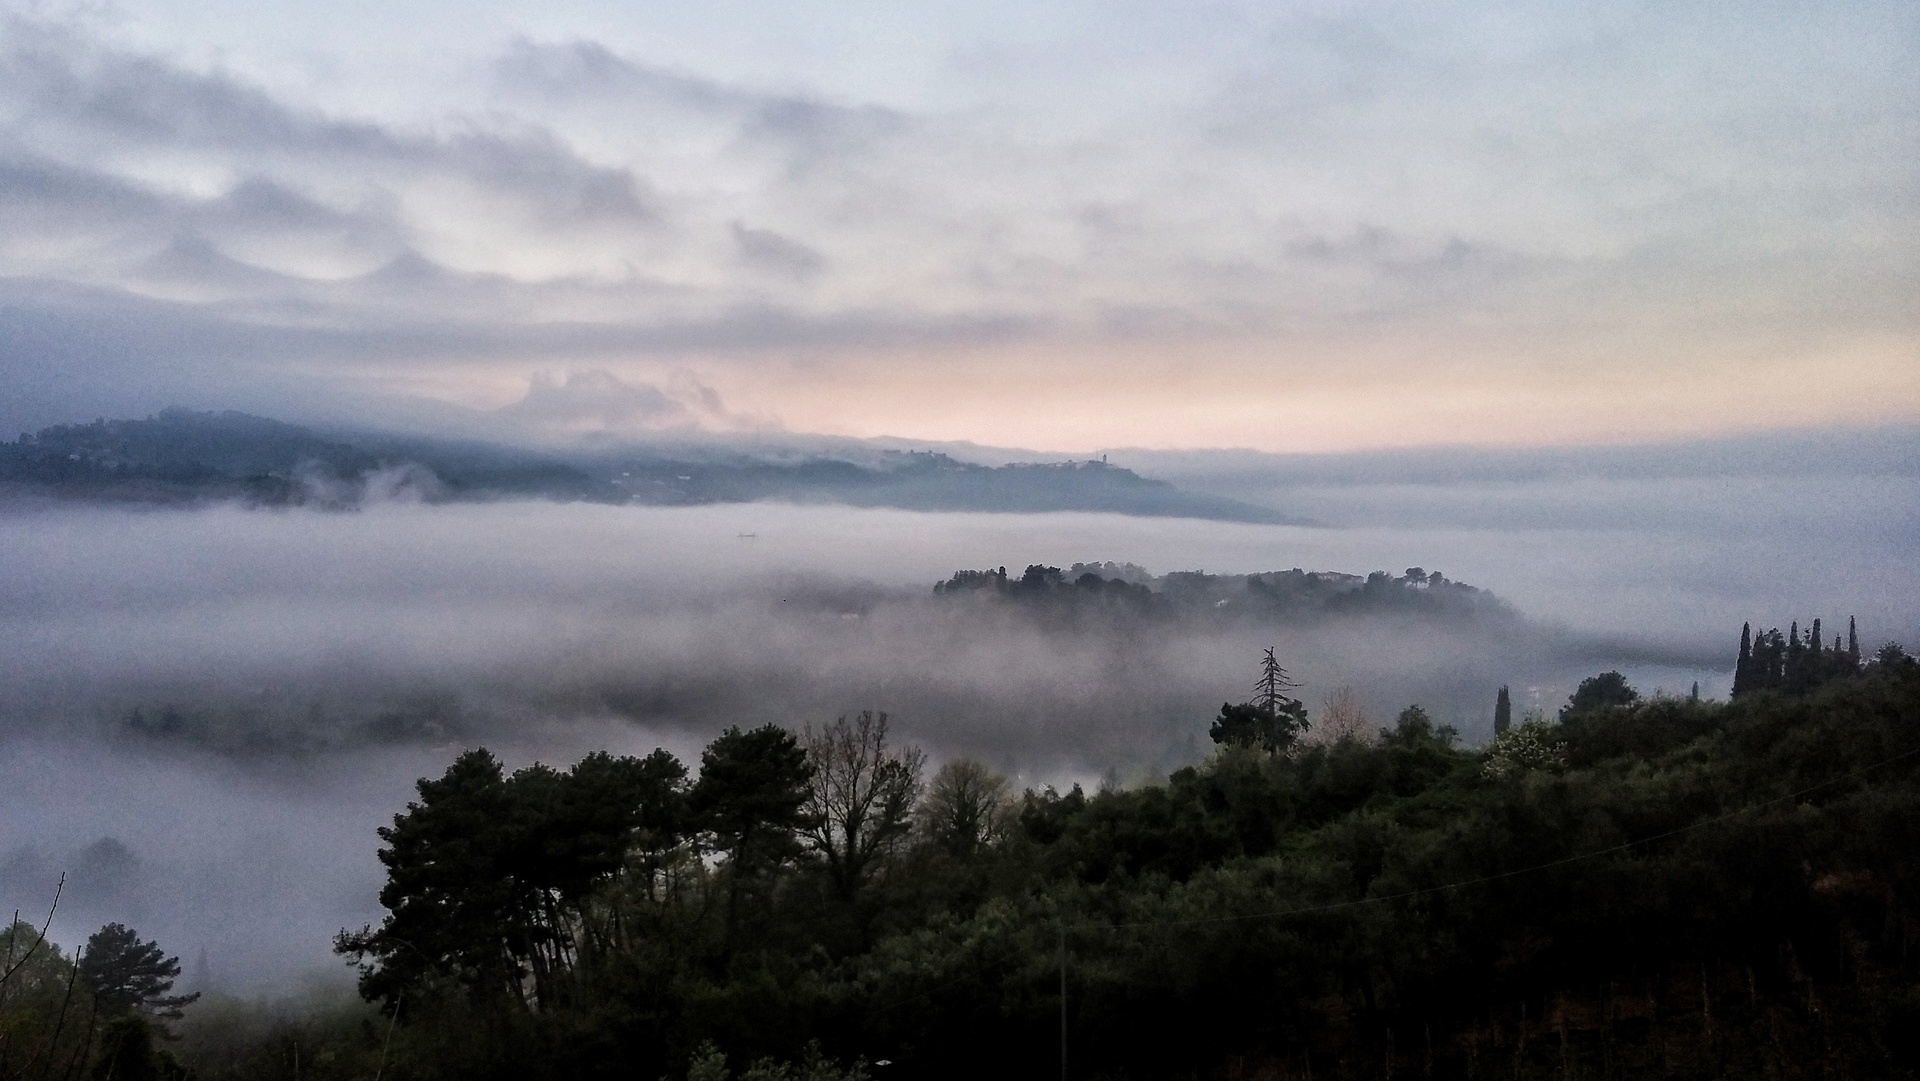 Scenic view of trees on landscape during foggy weather